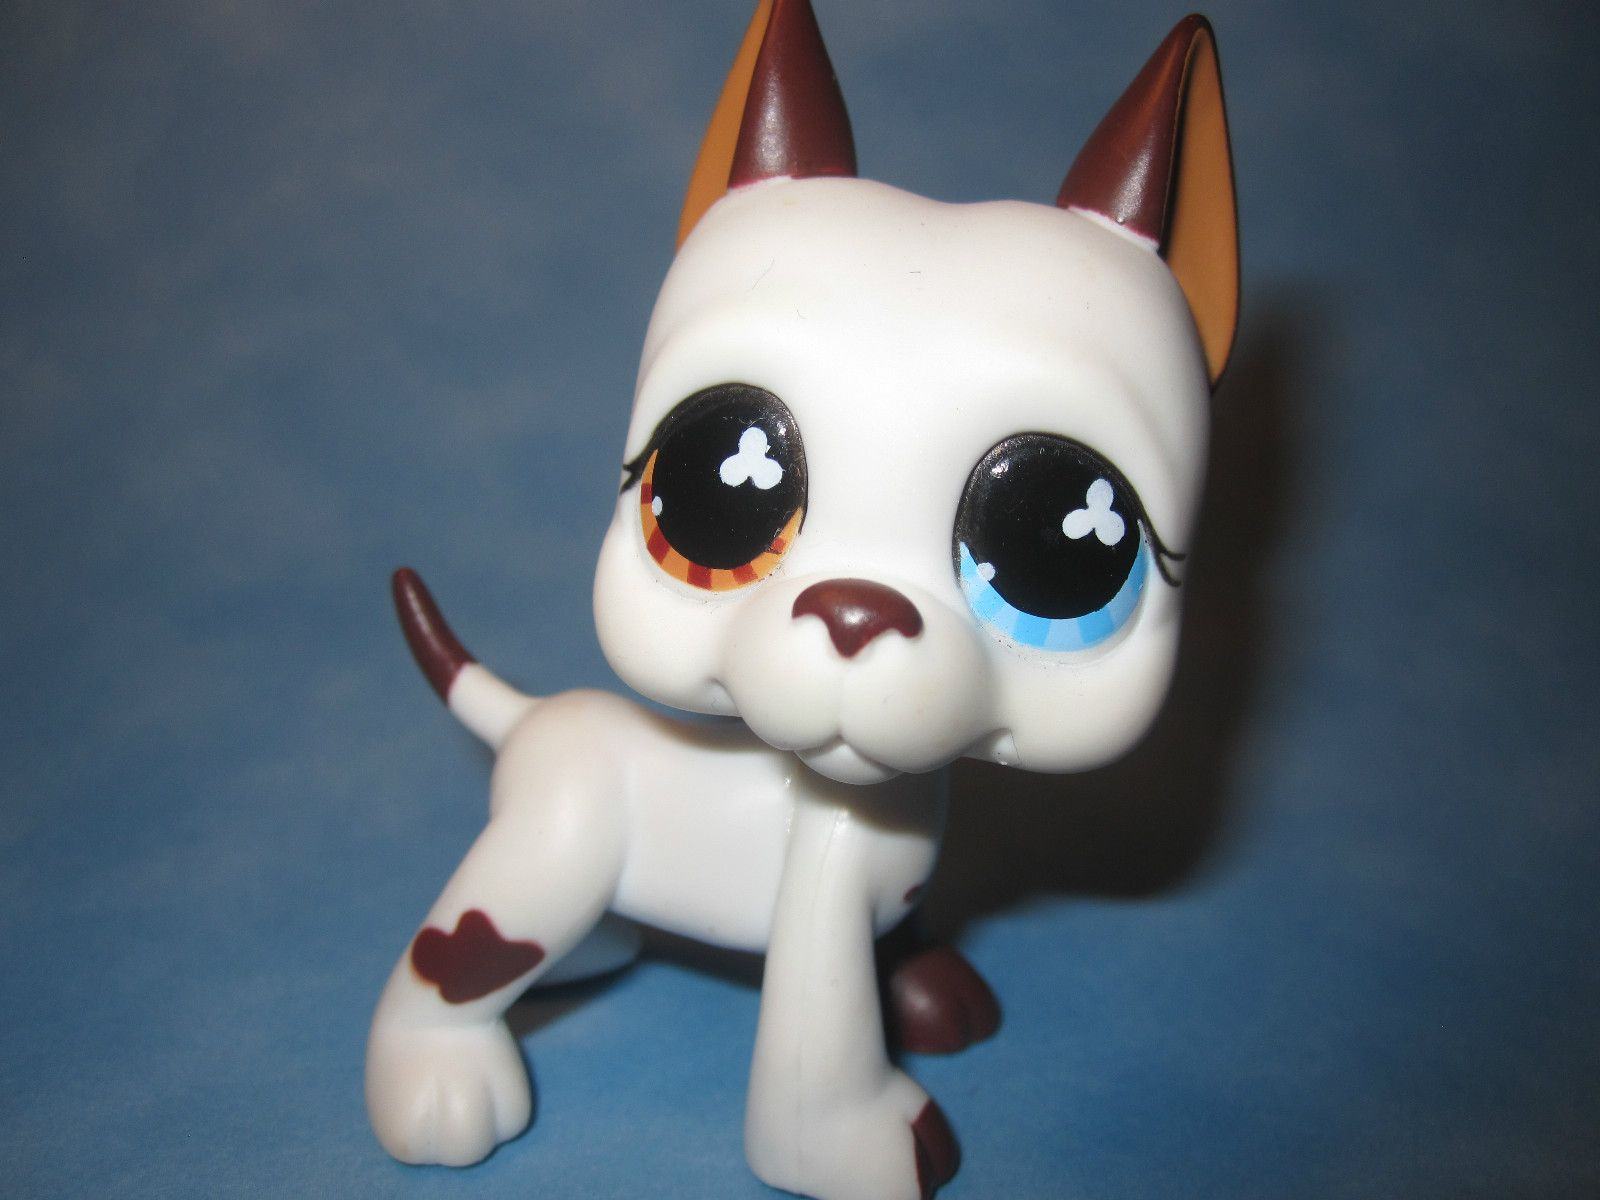 4x Littlest Pet Shop Lps Great Dane Dog 577 750 1688 1647 Very